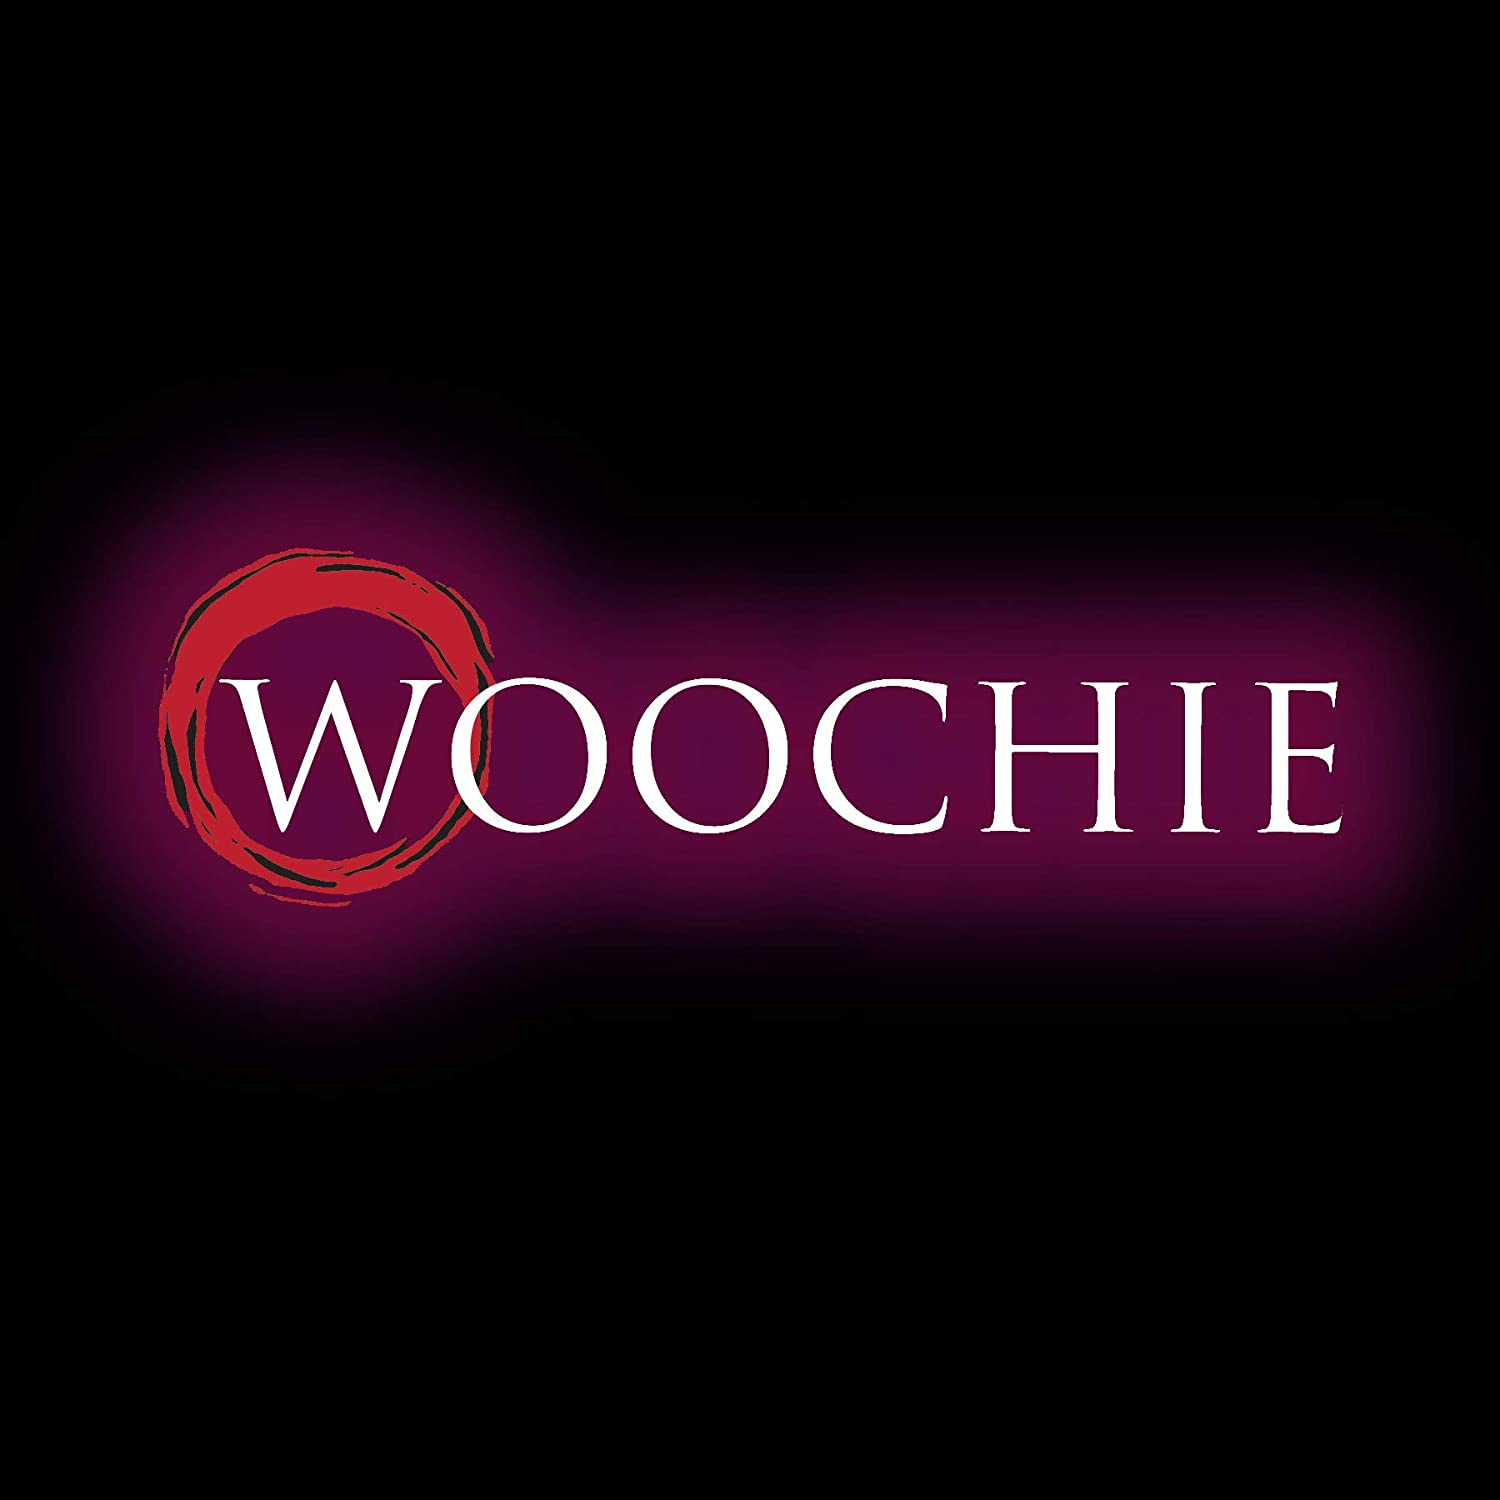 Amazon.com: Woochie Stencil Kit - Professional Quality Halloween Costume Makeup - Pop Rock: Toys & Games